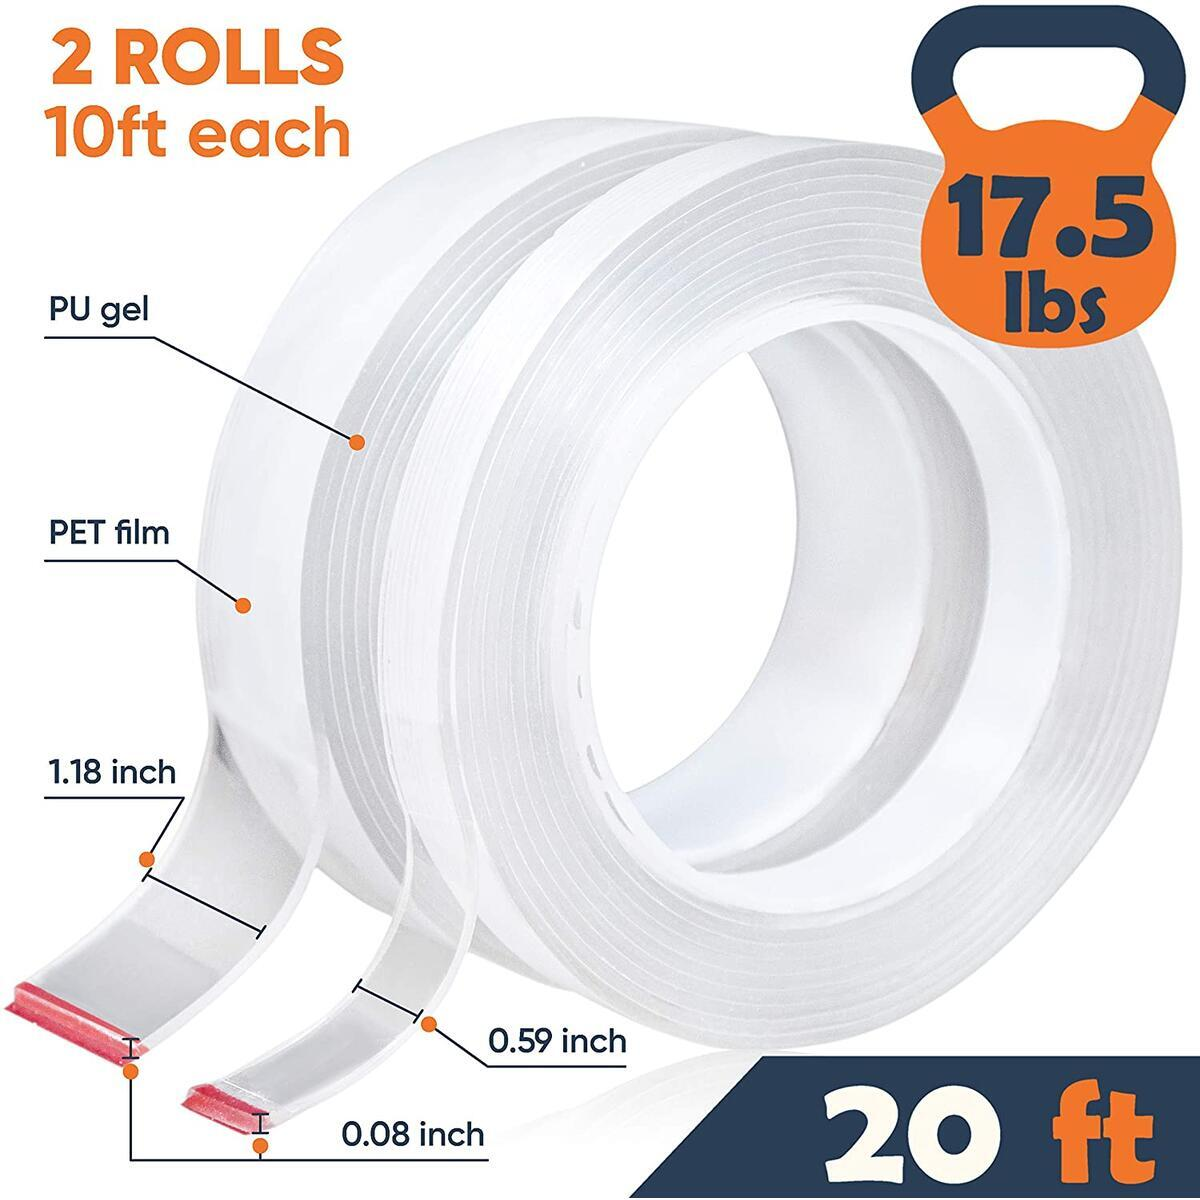 GLUIT-Nano Tape | Multipurpose Double Sided Tape Heavy Duty | Reusable Adhesive Tape 20FT | Removable Washable and Eco Friendly PU Gel for Home Office Car | Upgraded Quality - 2020 (2 Rolls/20FT/6M)